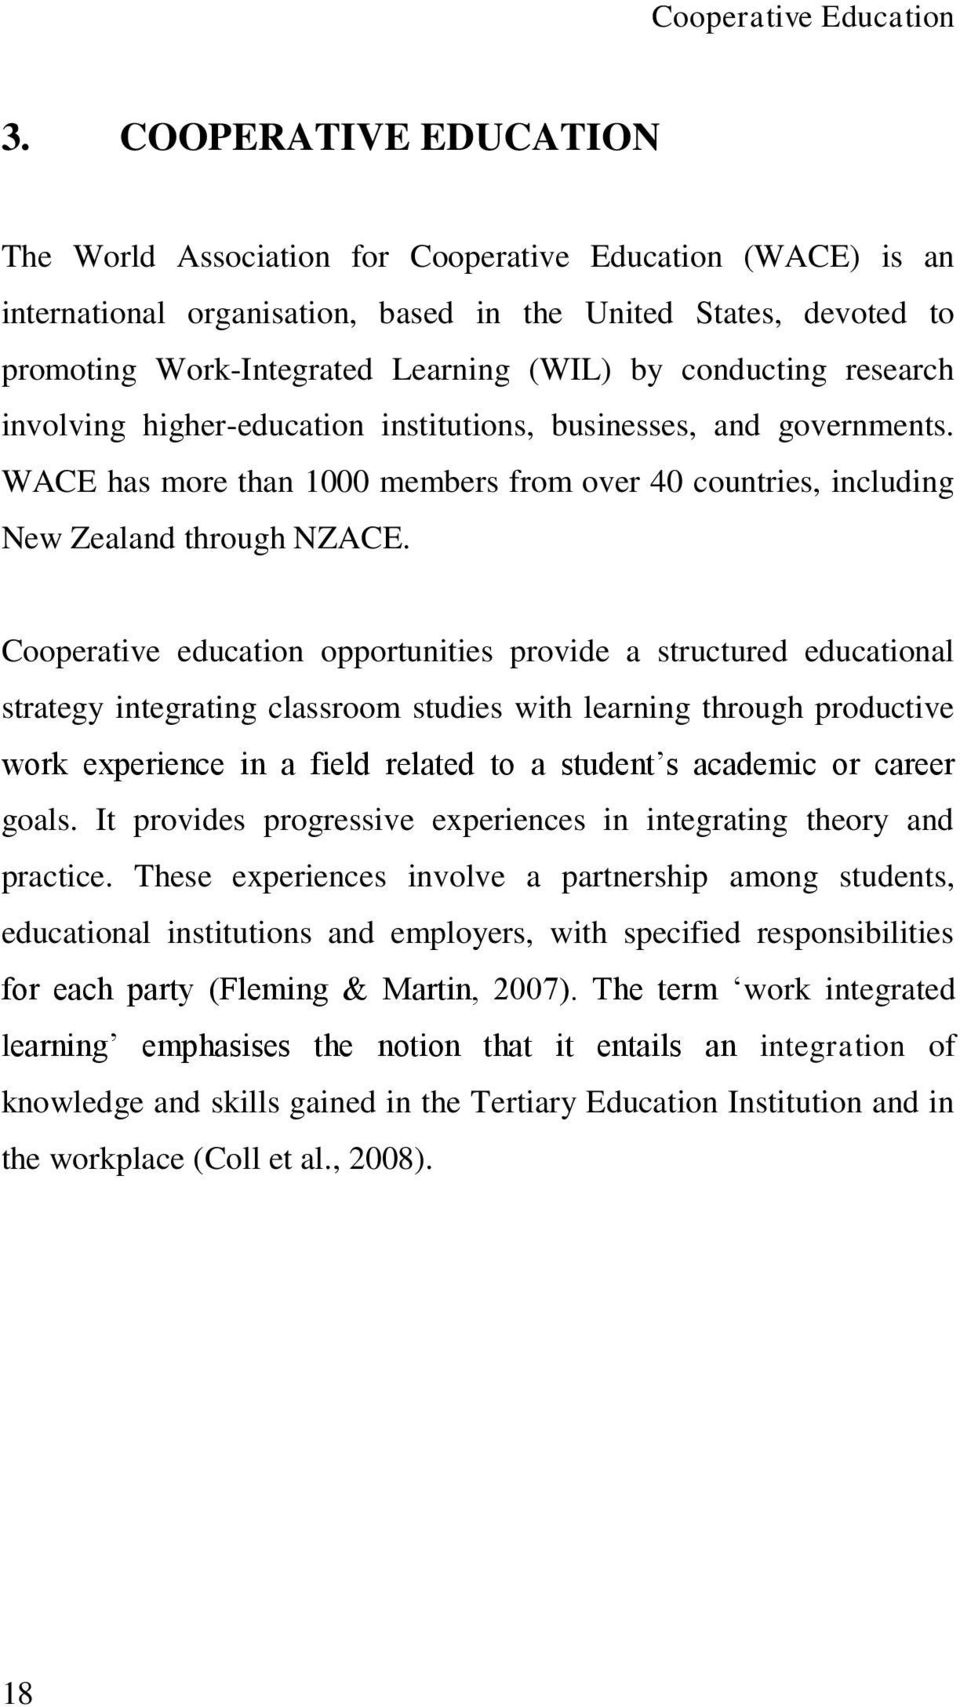 conducting research involving higher-education institutions, businesses, and governments. WACE has more than 1000 members from over 40 countries, including New Zealand through NZACE.